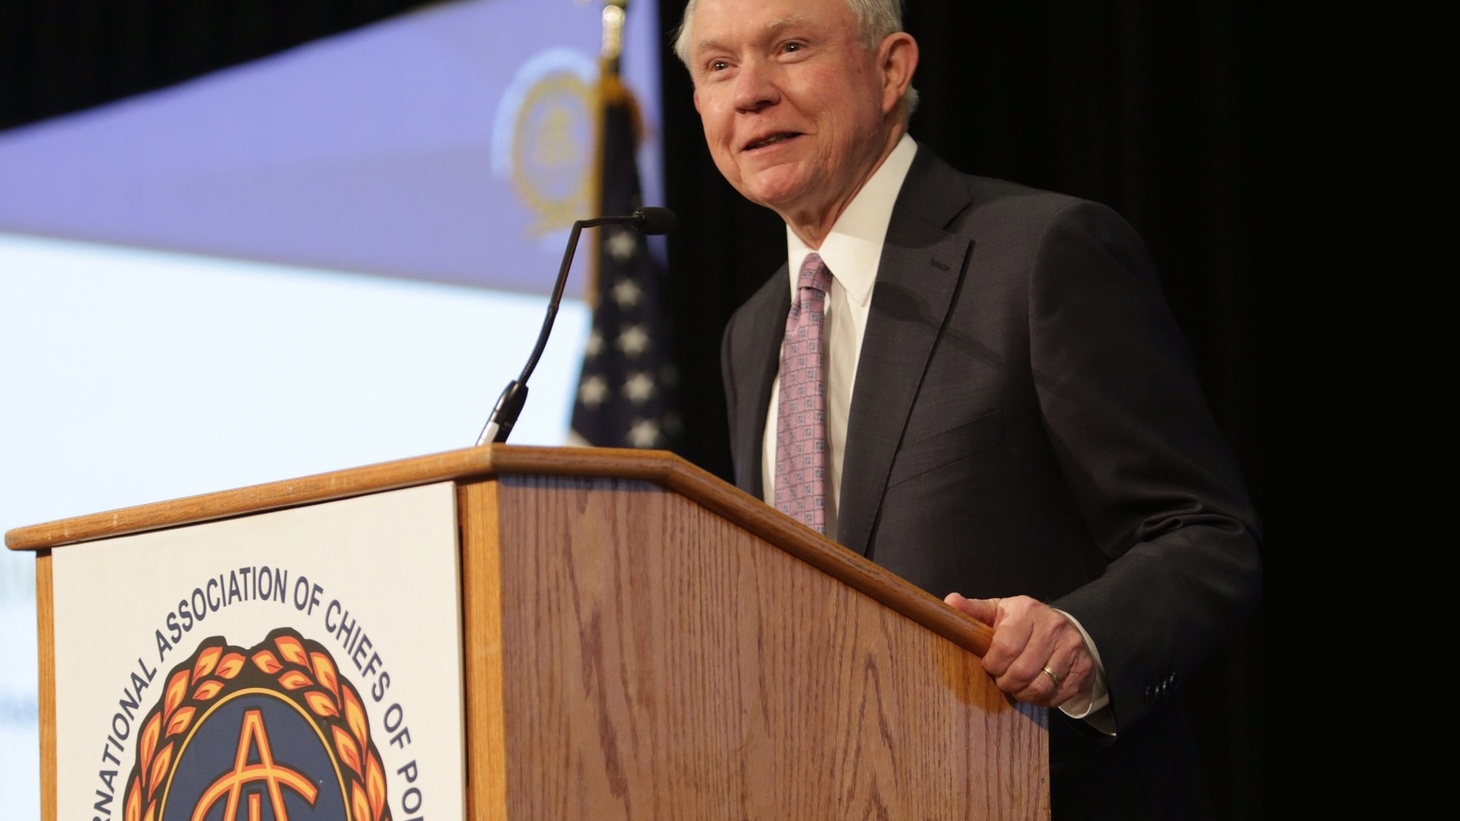 "The pendulum swings between treatment-focused approaches to drug abuse and tough law enforcement. Now, after years of Obama-era ""reforms,"" President Trump's Attorney General, Jeff Sessions wants local police freed from federal restrictions to fight another ""war on drugs."""